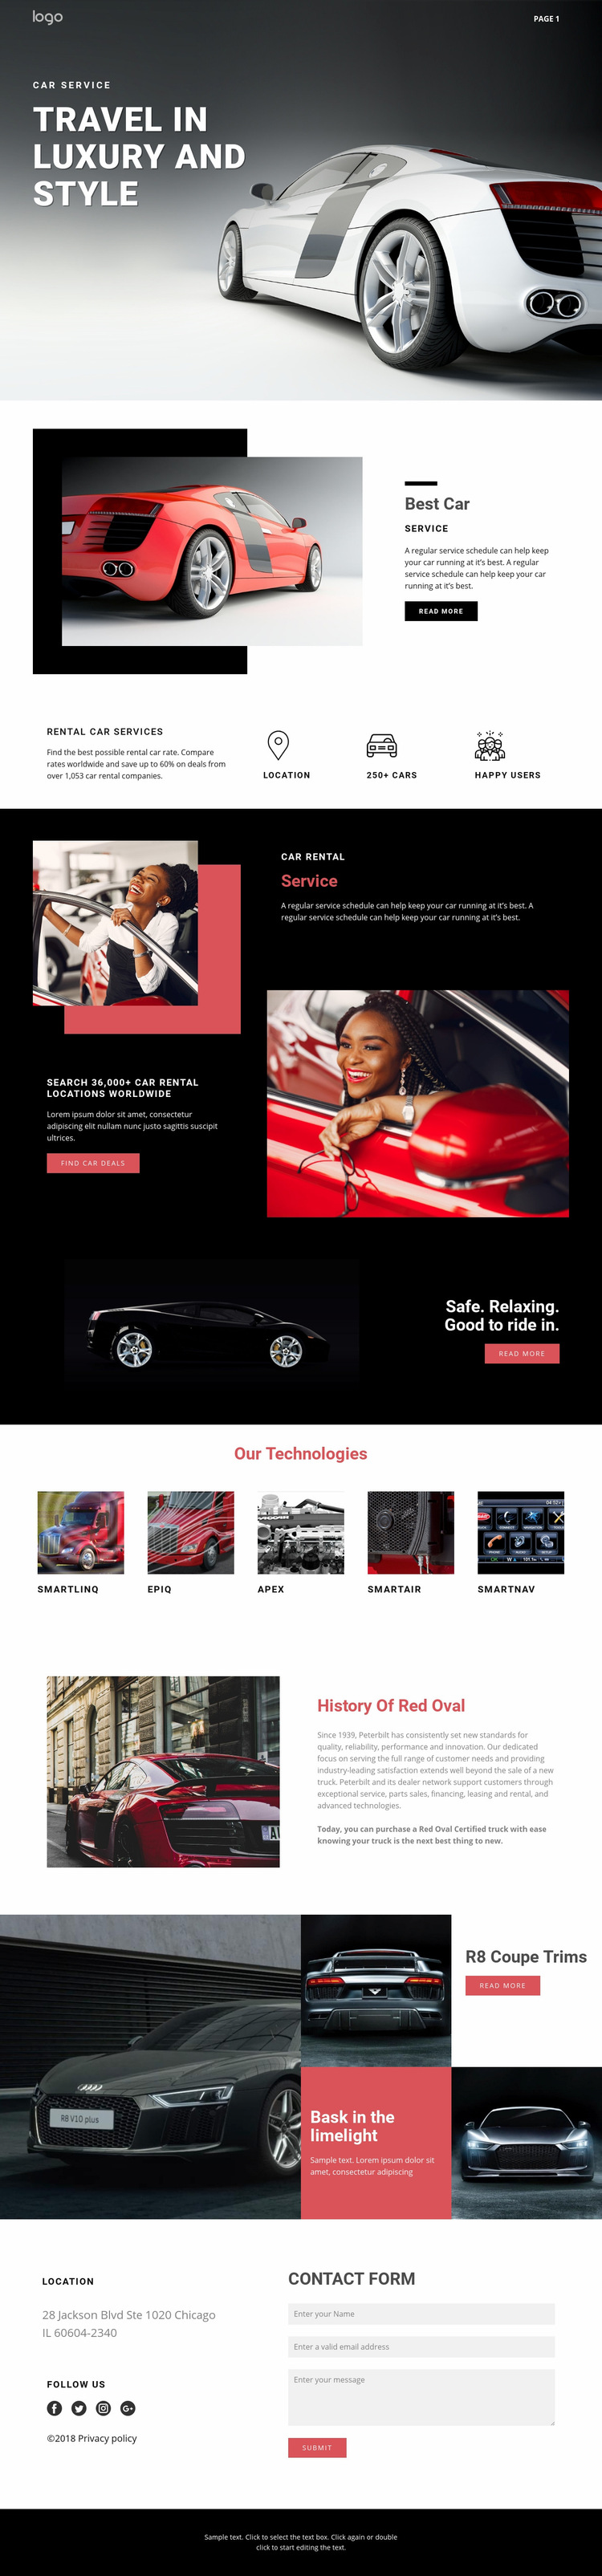 Traveling in luxury cars Web Page Design